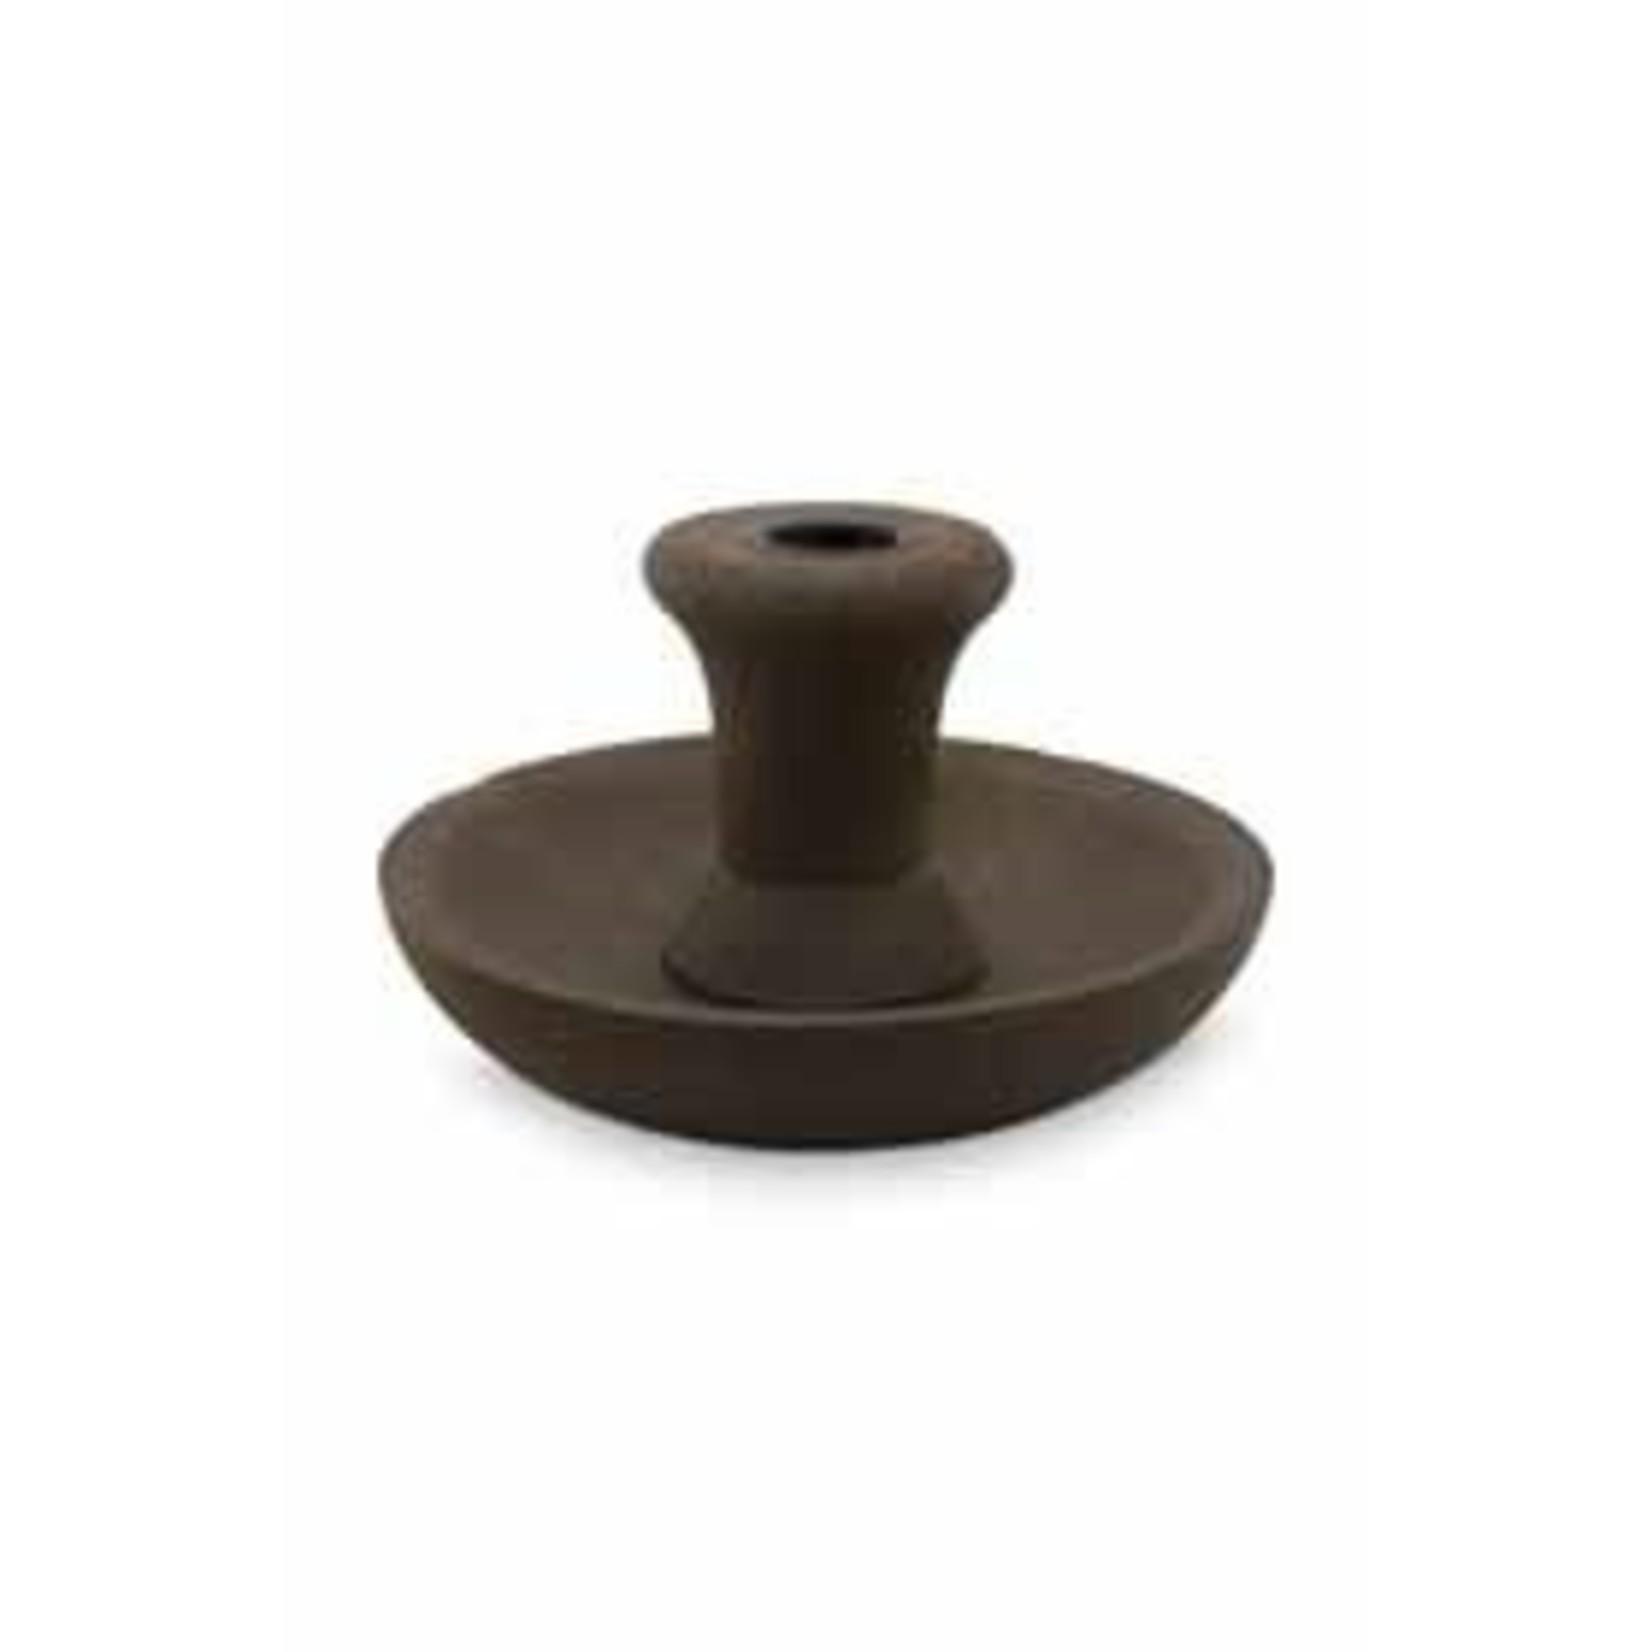 vtwonen Candle Holder Round Brown with Black Cup 16cm